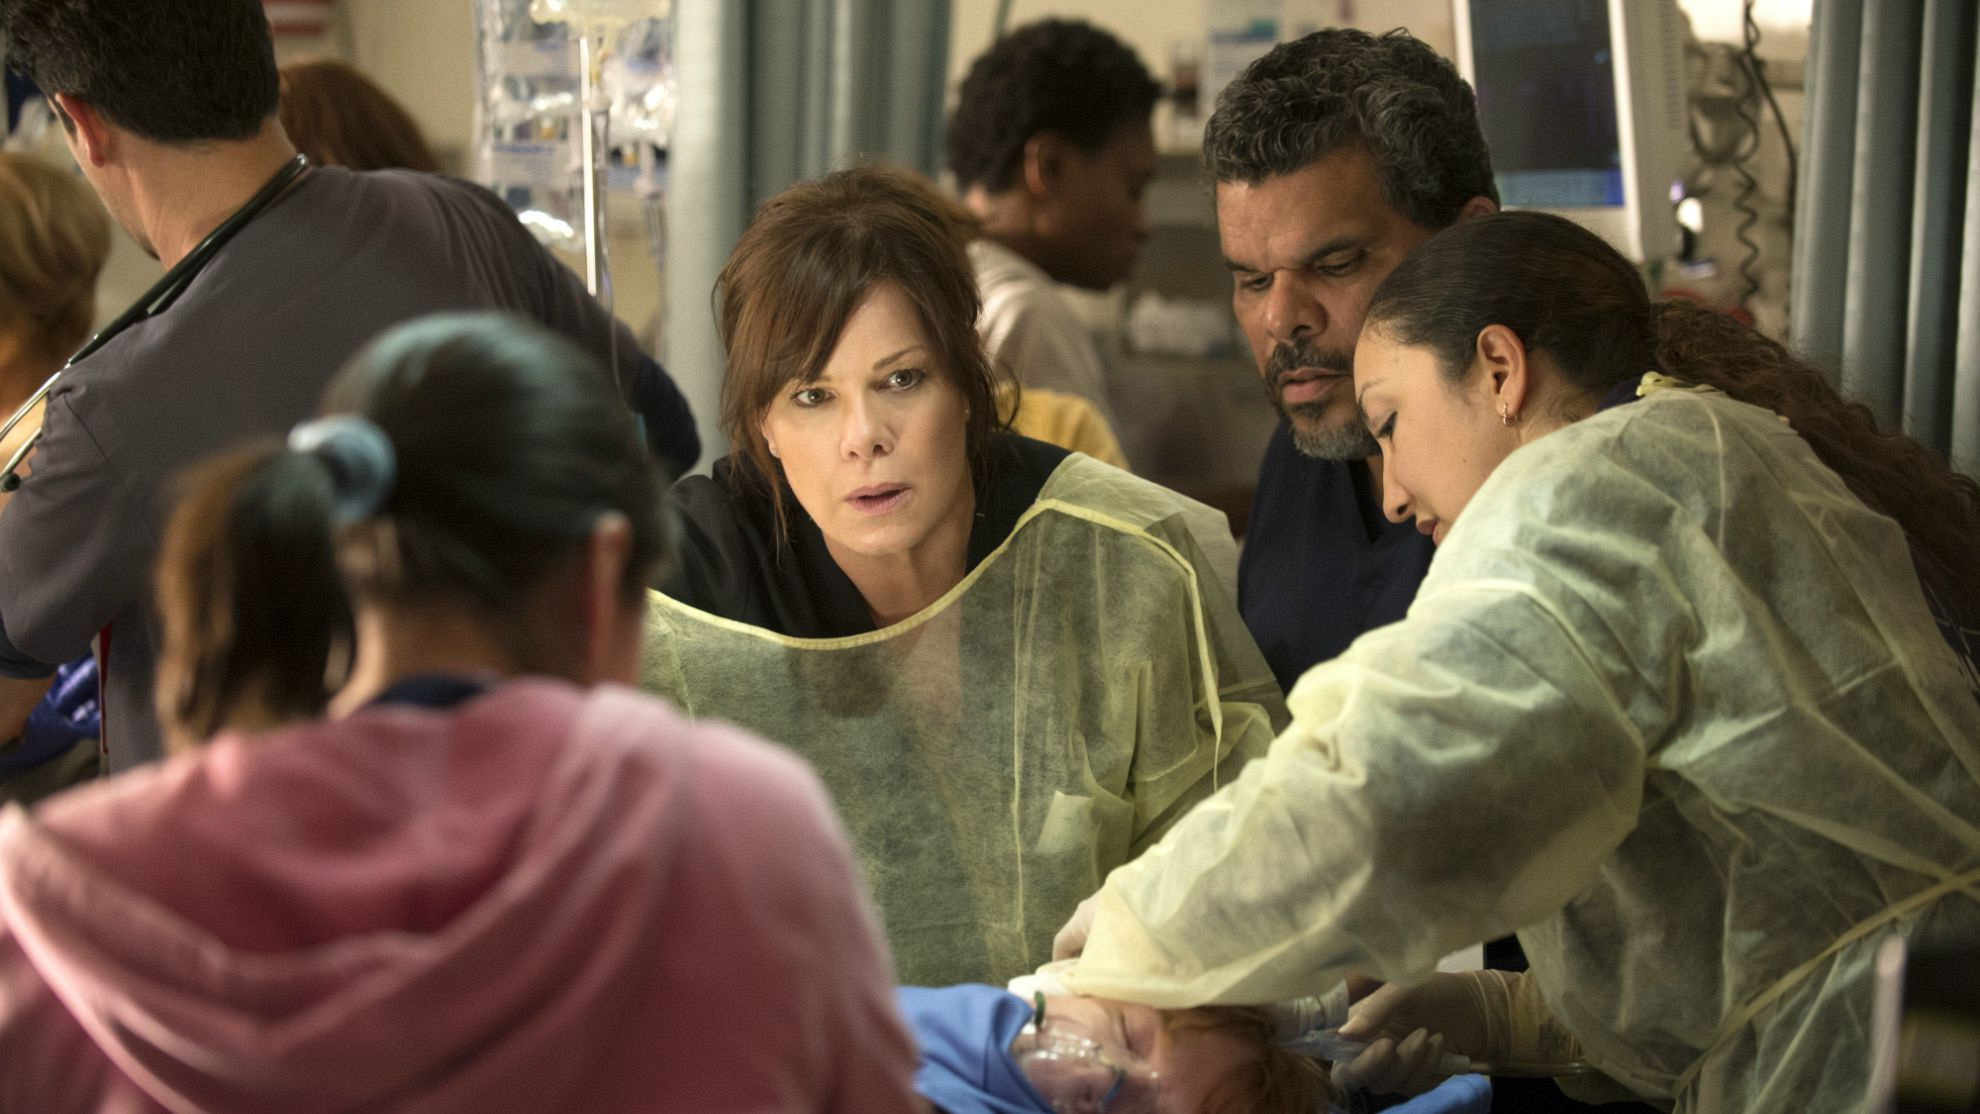 Dr. Leanne Rorish on Code Black